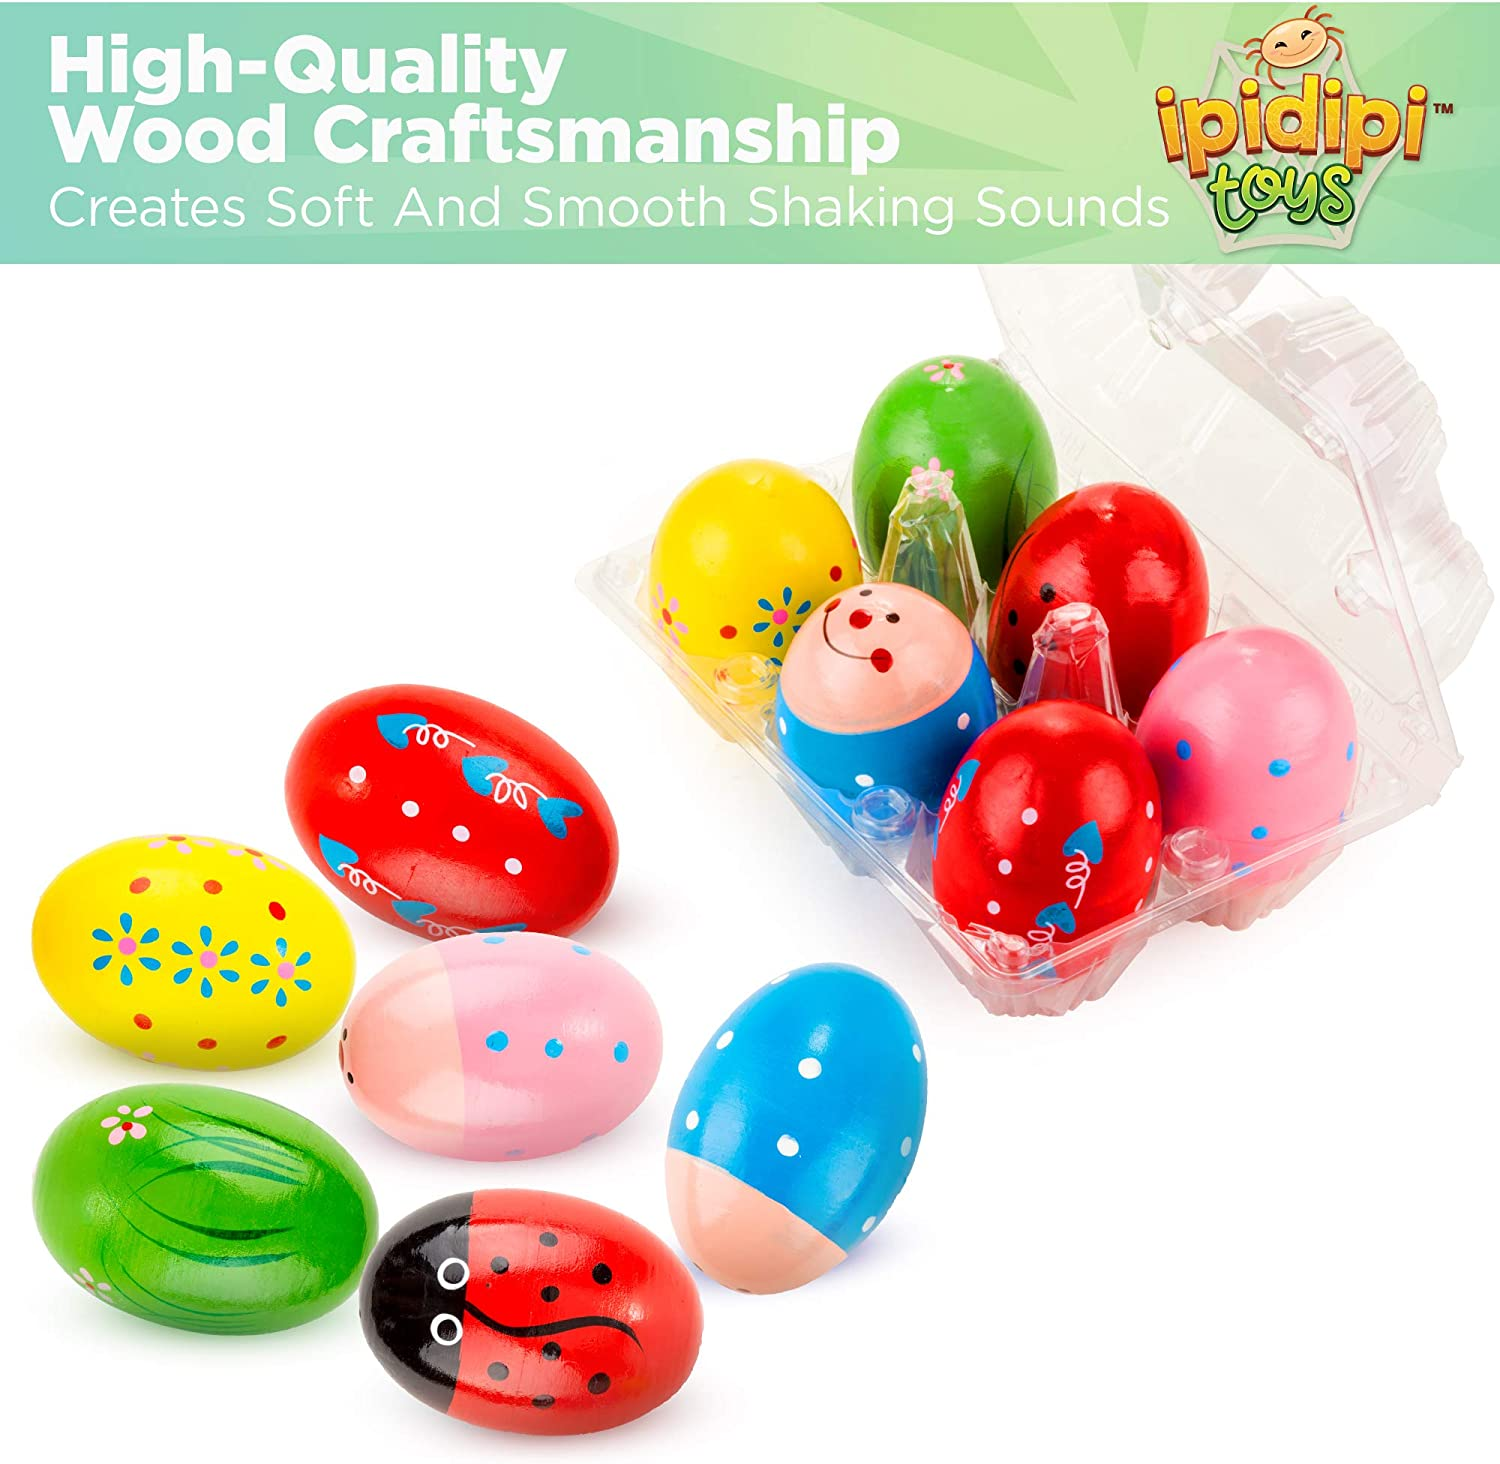 SODIAL Set of 6 pcs Wooden Percussion Musical Egg Maracas Egg Shakers Musical Instrument Toy for Kids